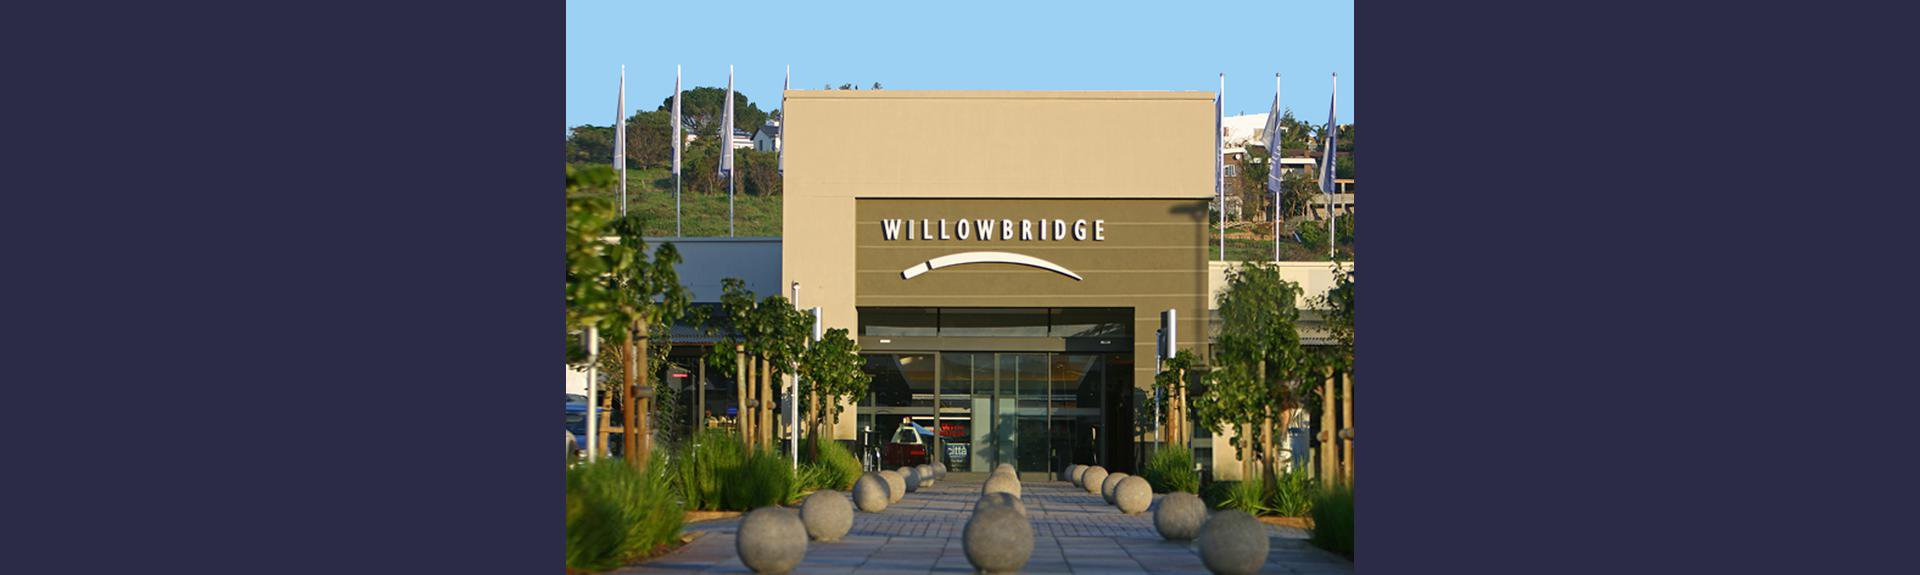 Willowbridge | Family-Friendly Shopping Centre | Cape Town | Things to do With Kids